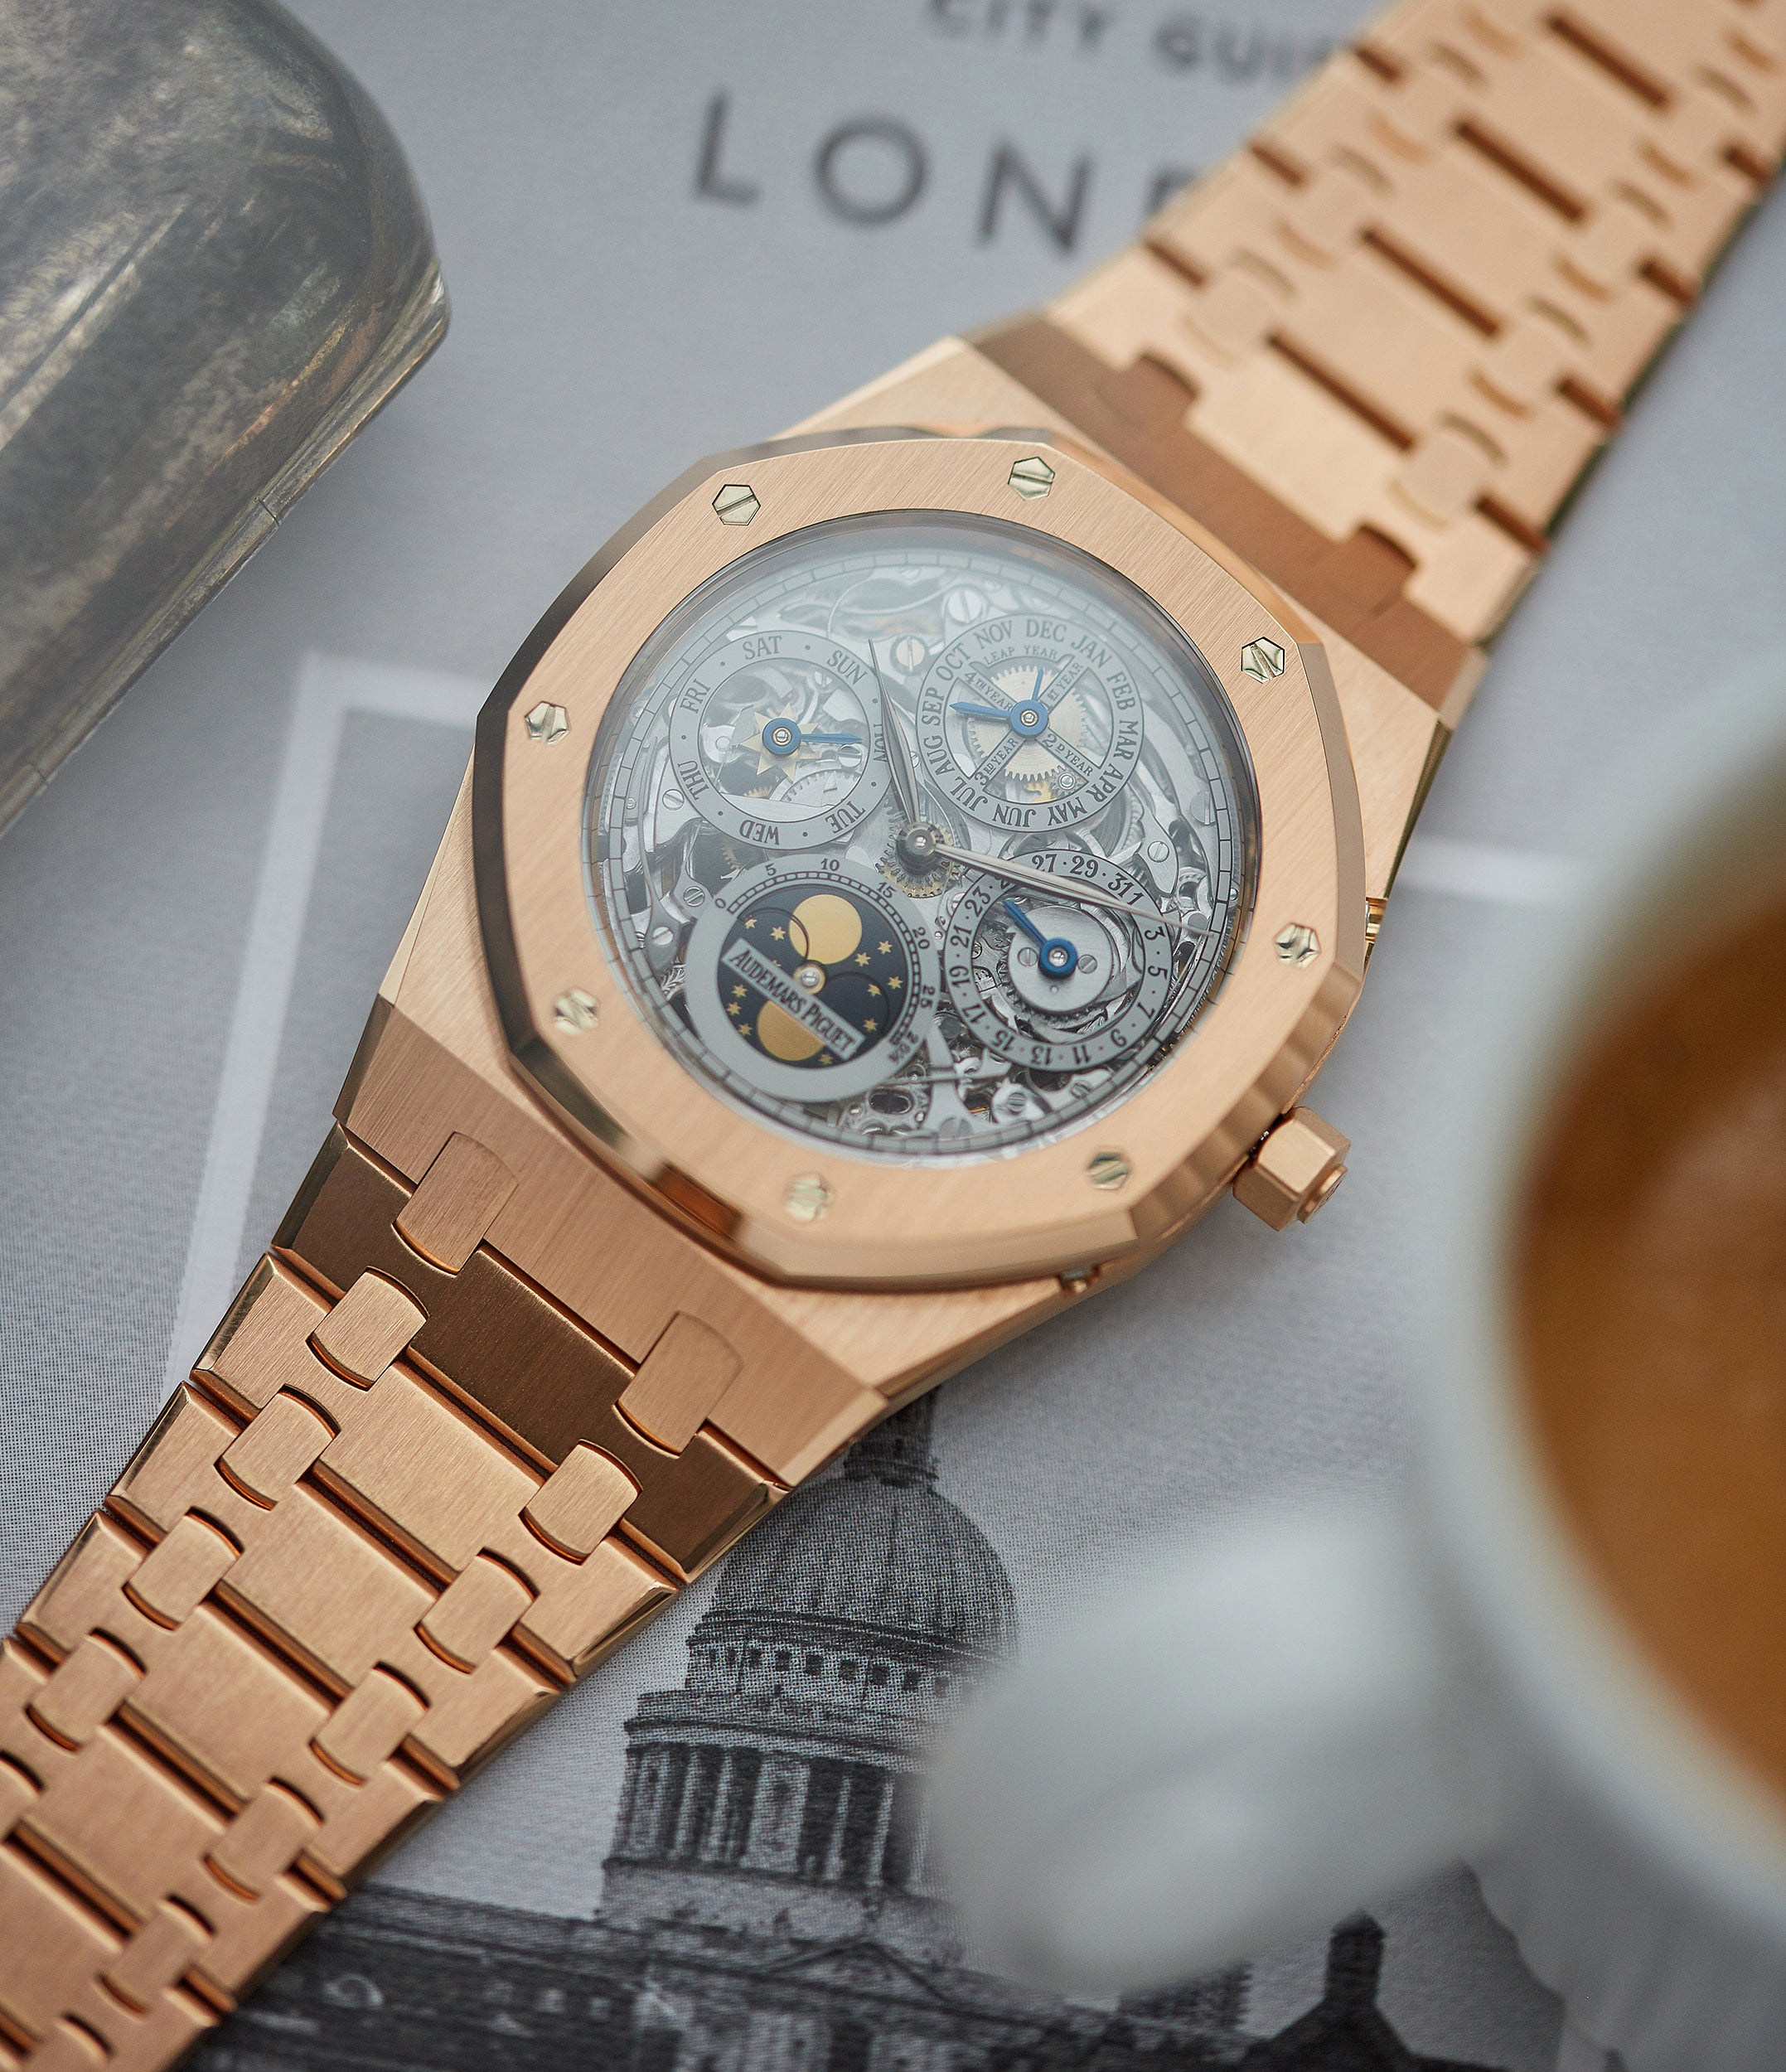 rare Audemars Piguet Royal Oak Quantieme Perpetual Calendar 25829OR rose gold skeletonised pre-owned sport watch for sale online at A Collected Man London UK specialist of rare watches